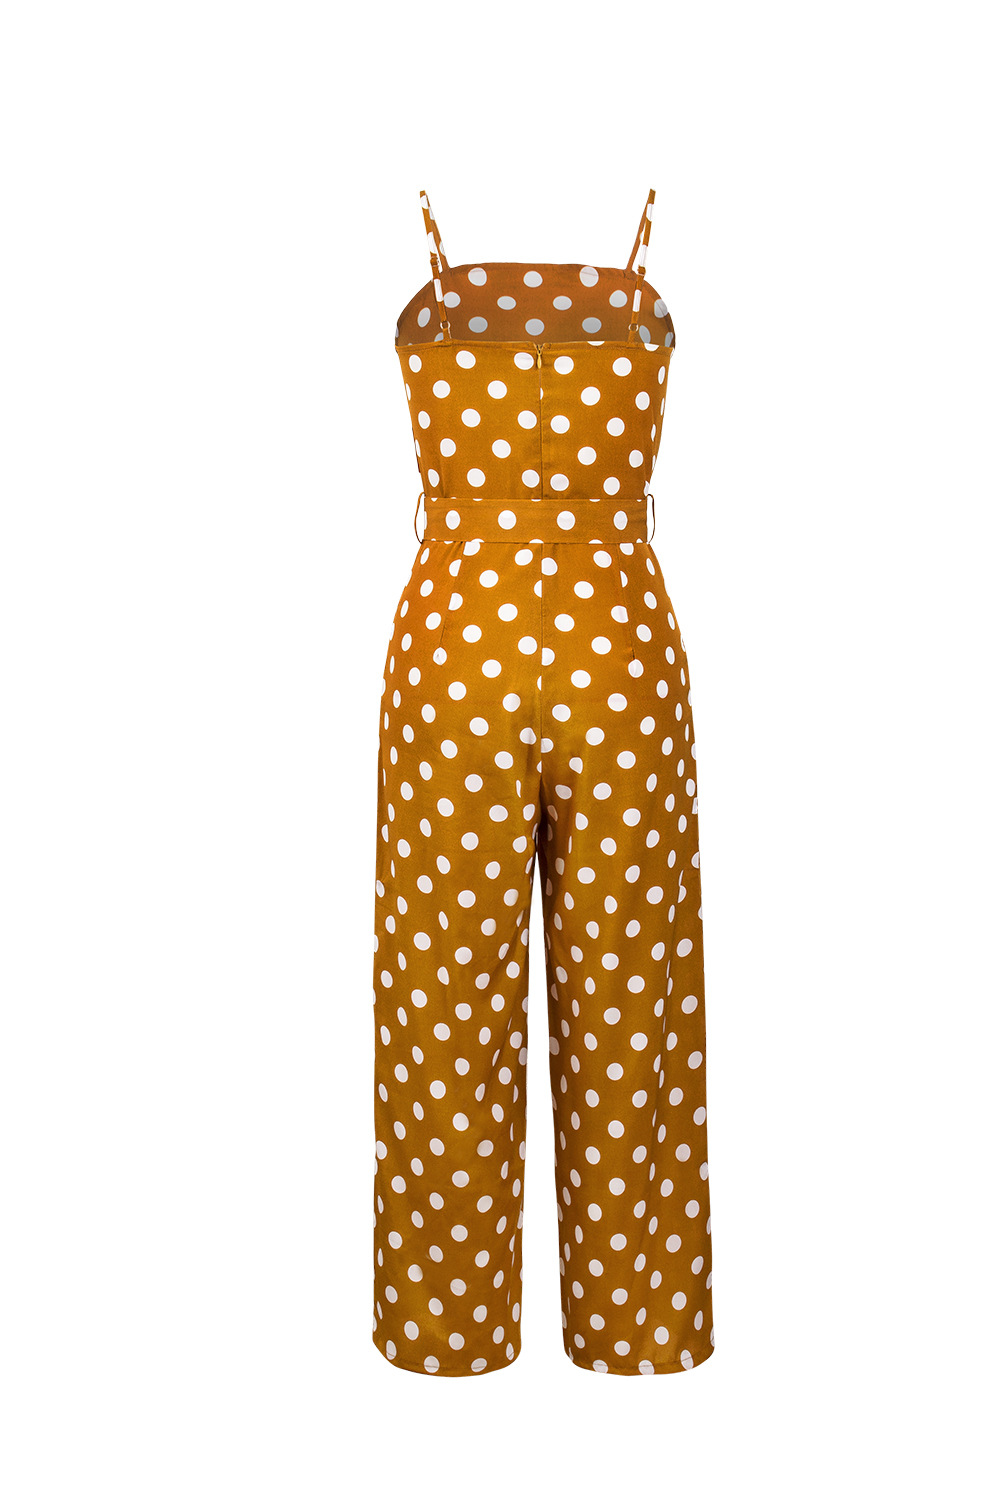 HTB1fXcHbjDuK1RjSszdq6xGLpXaP - Women Rompers summer long pants elegant strap woman jumpsuits polka dot plus size jumpsuit off shoulder overalls for womens